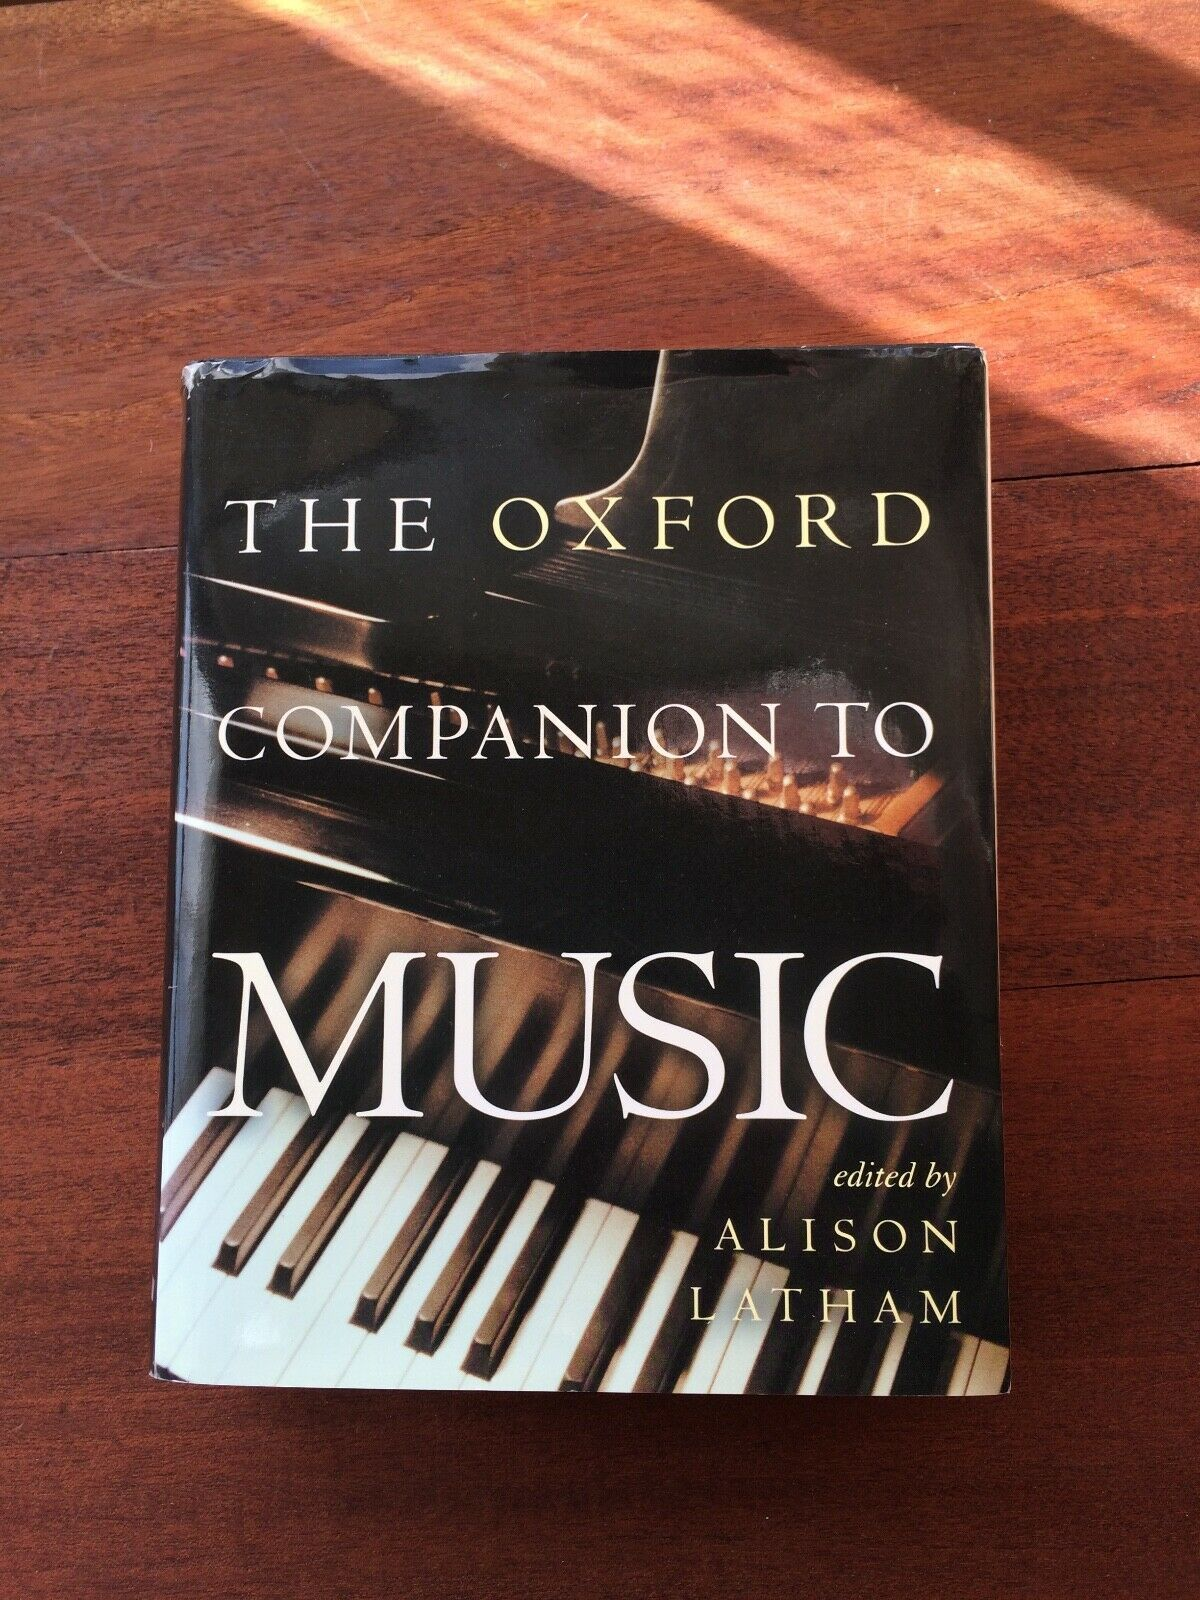 The Oxford Companion To Music By Alison Latham Oxford University Press 2002 Oxford University Press Latham Book Cover